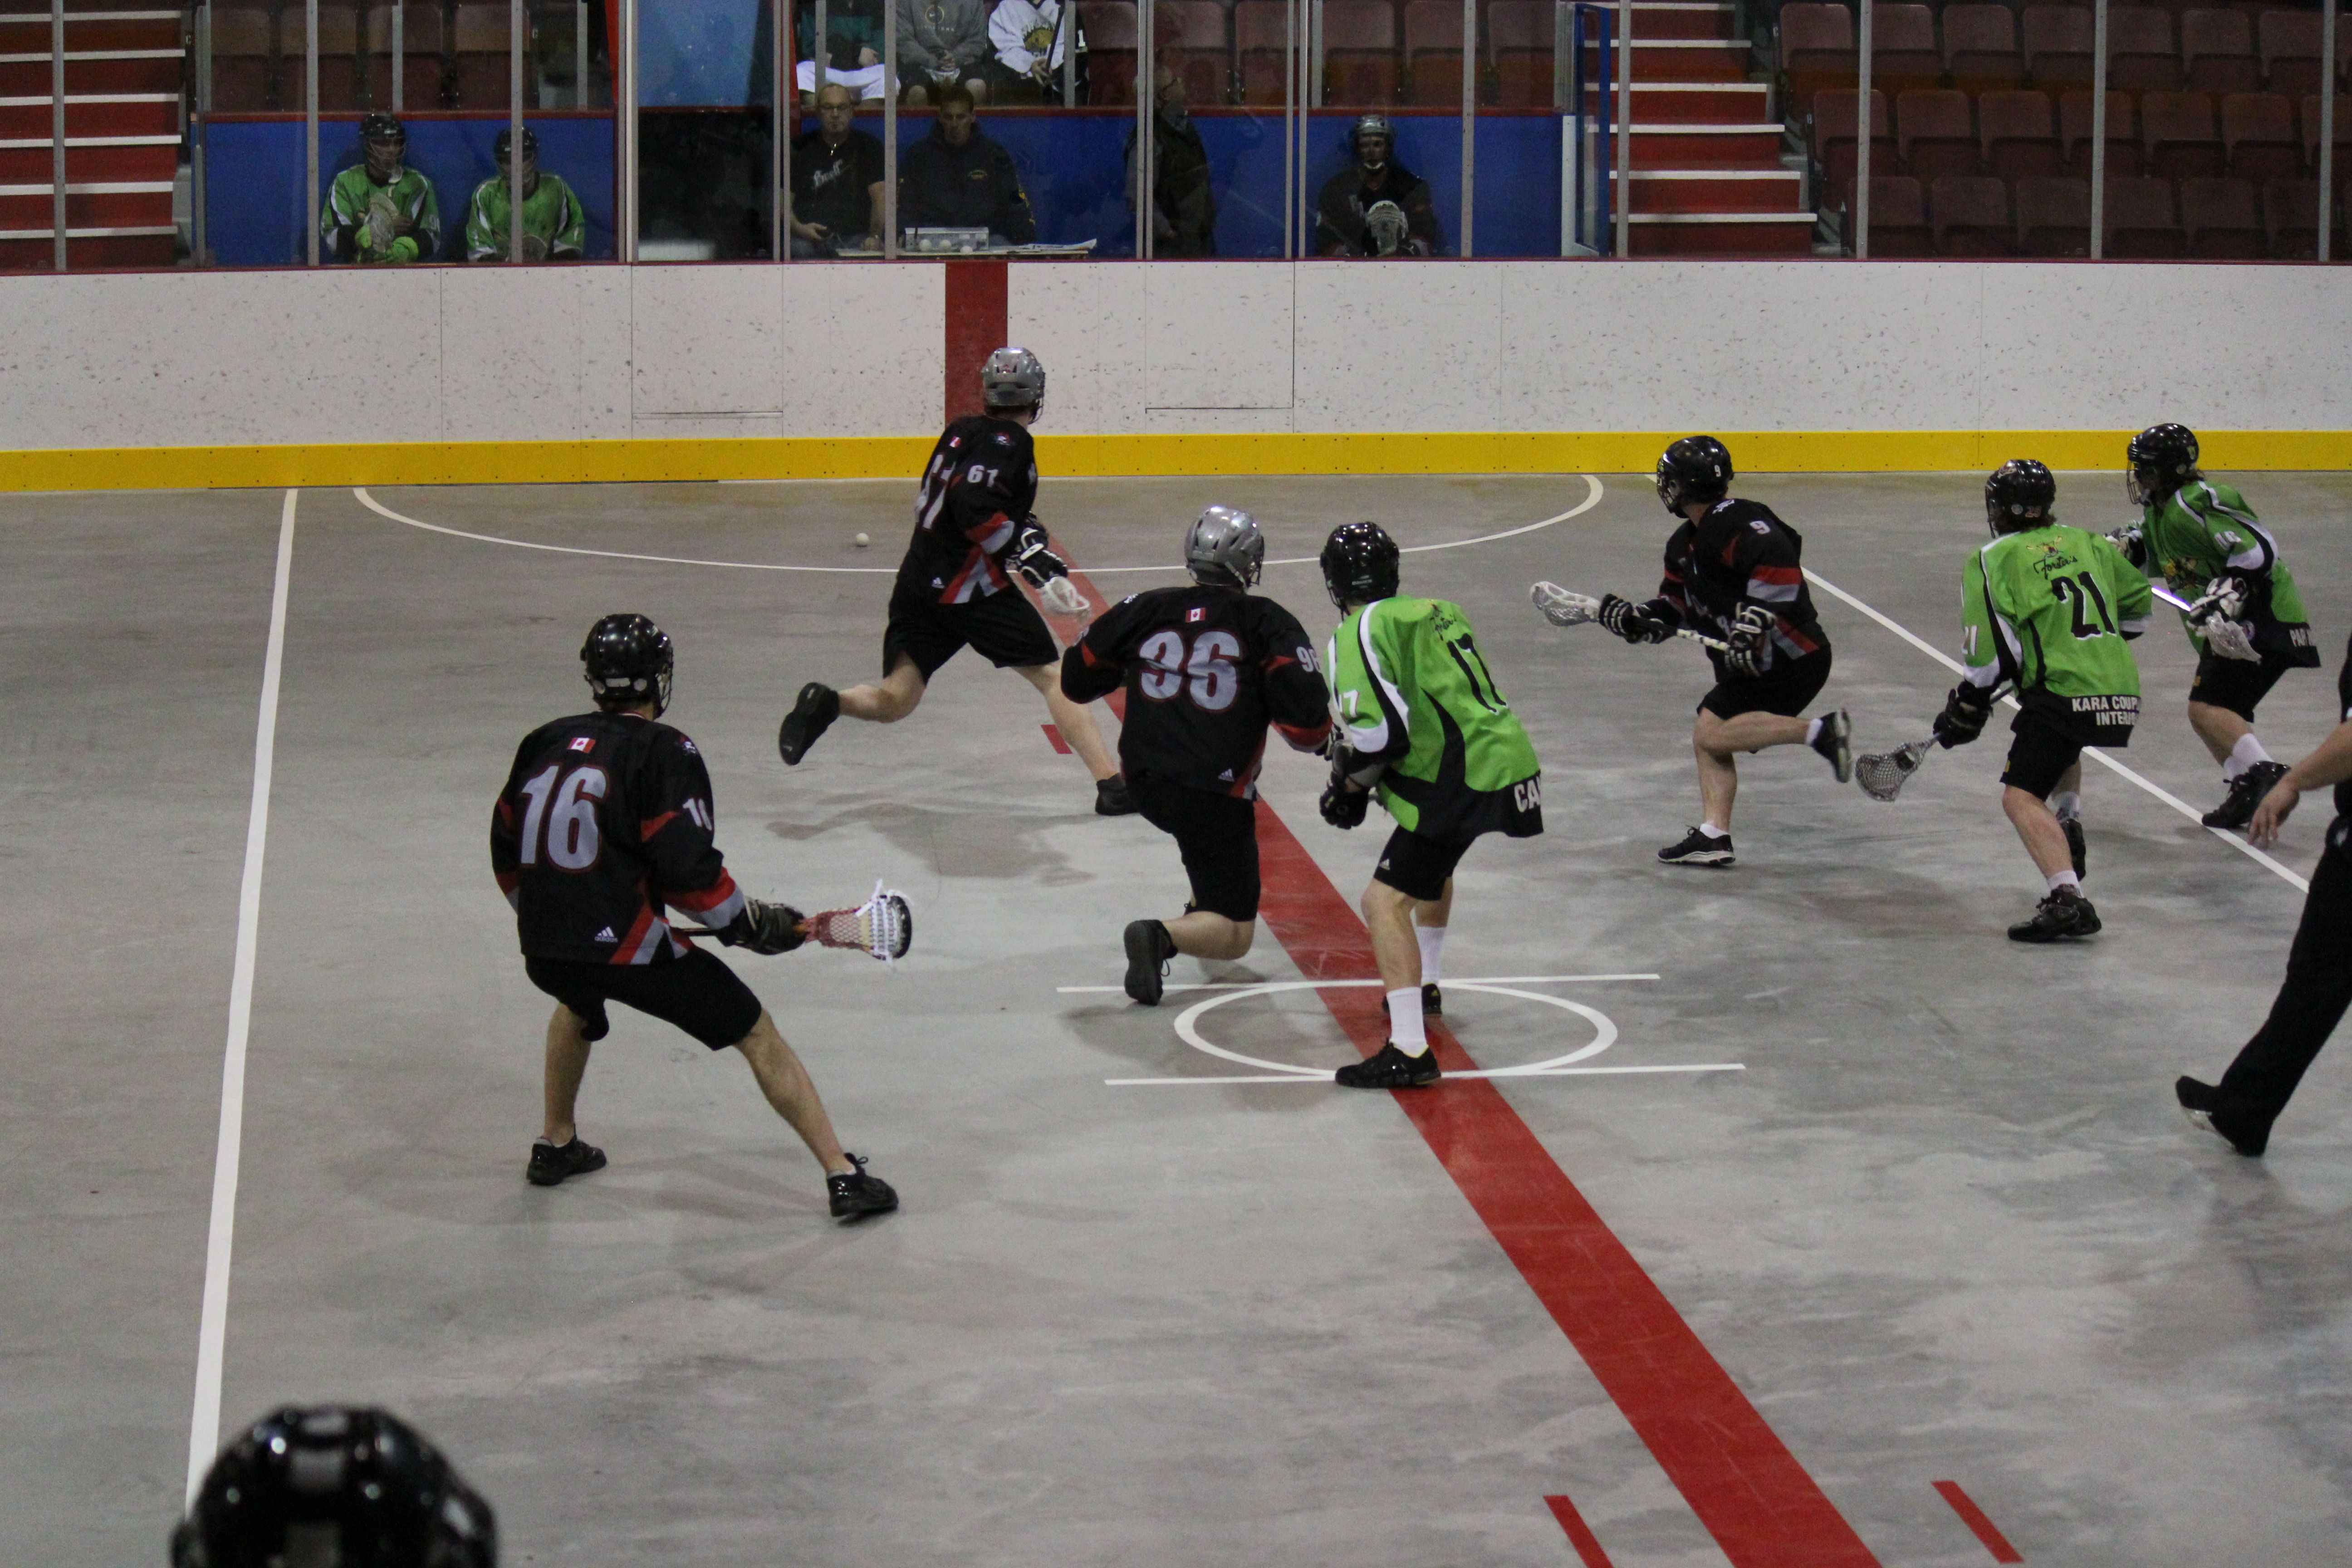 Typical Jr lacrosse faceoff